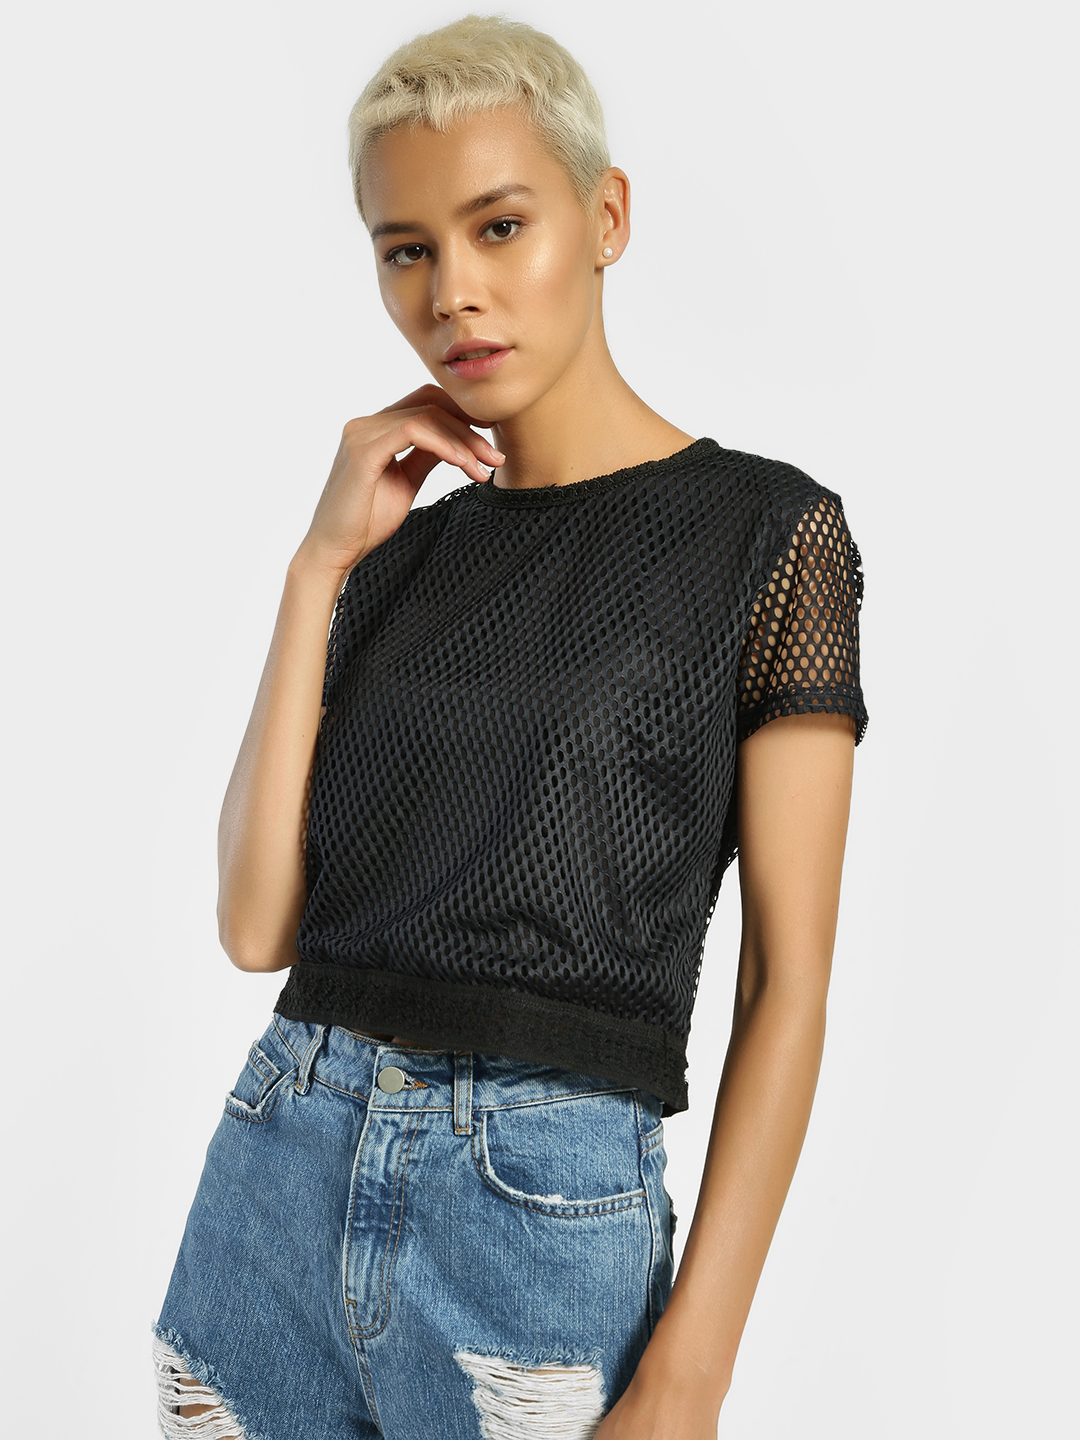 Privy League Black Mesh Overlay Crop Top 1